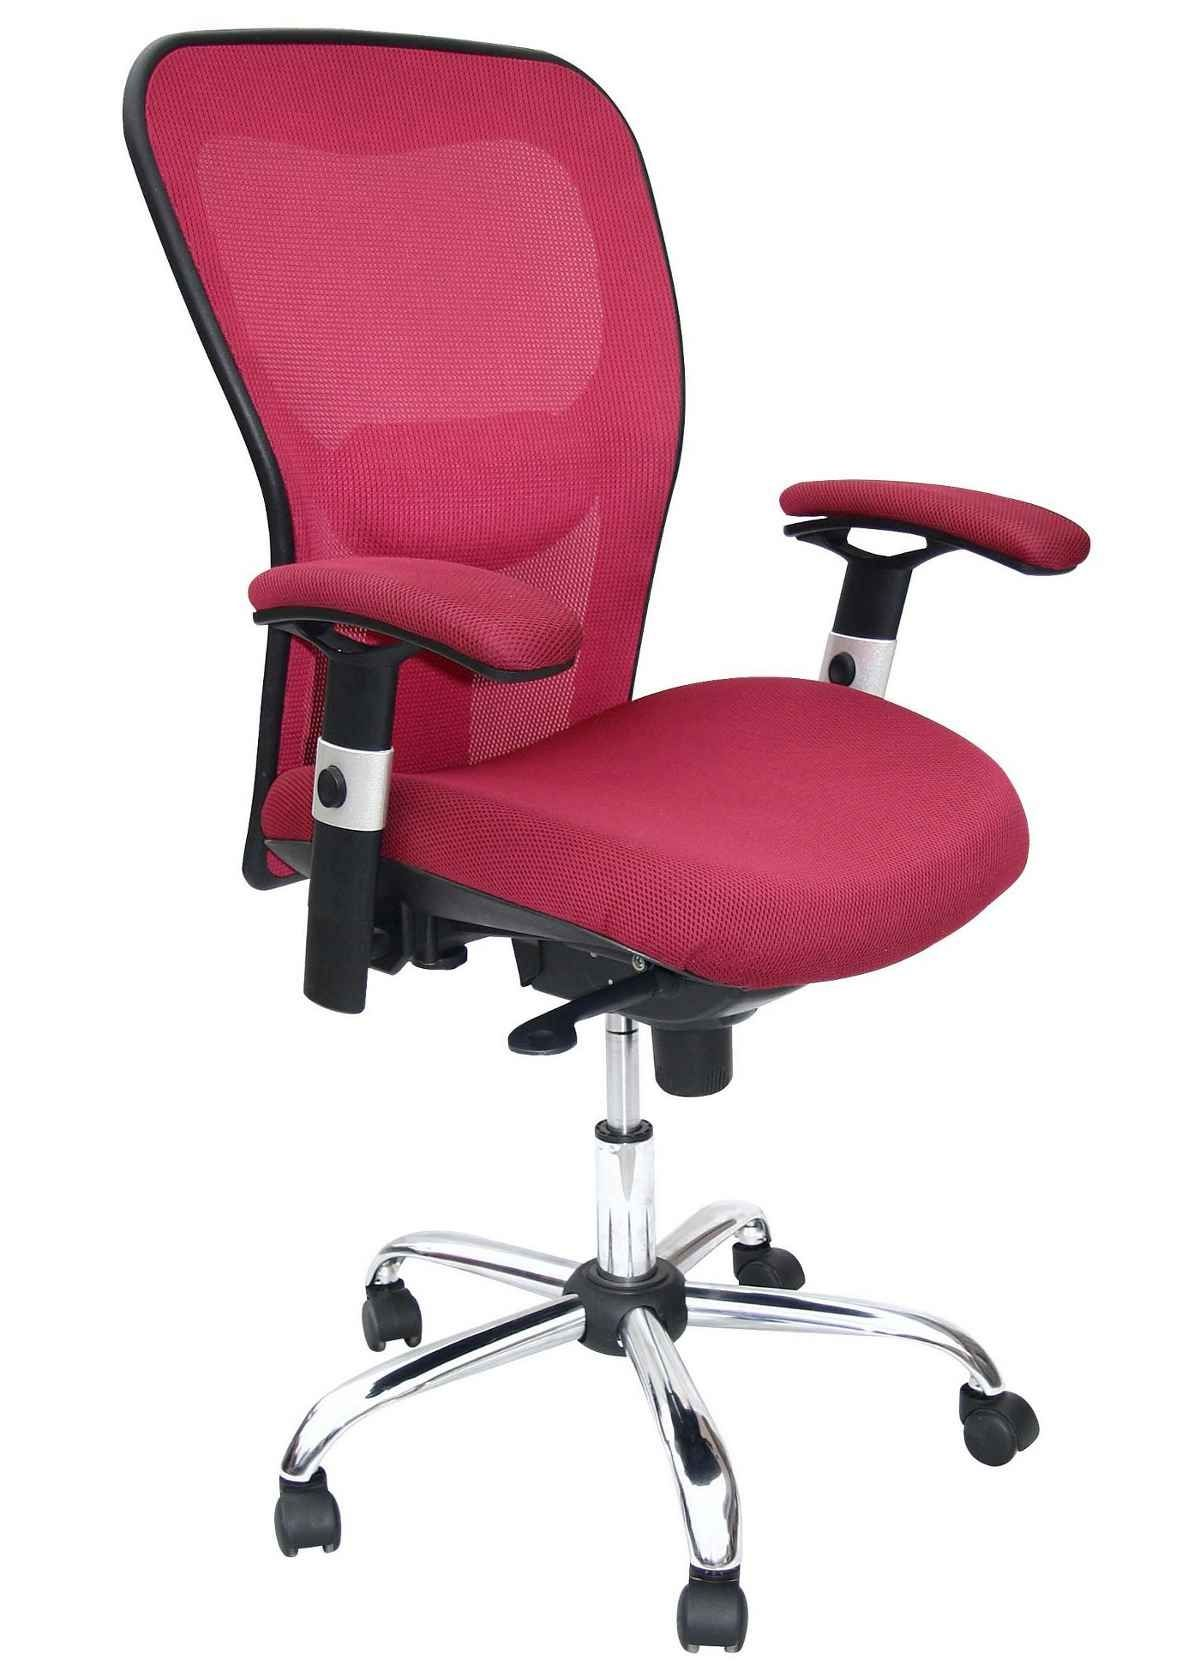 Pink Desk Chair With Arms